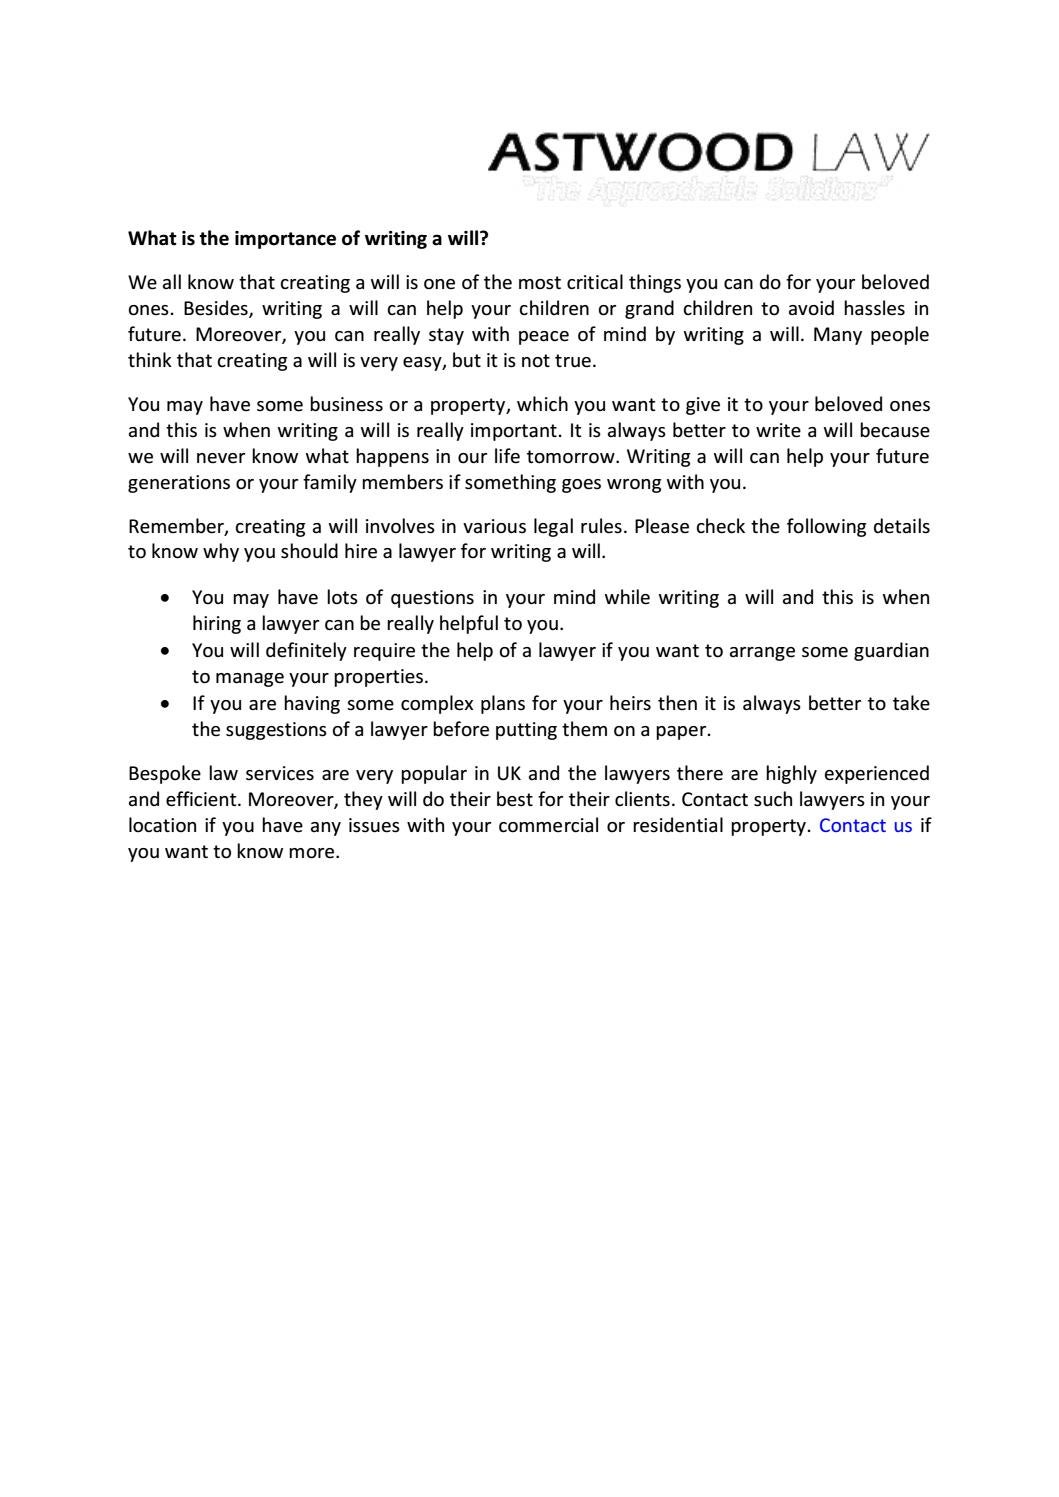 What is the importance of writing a will by Rohit Pattanaik